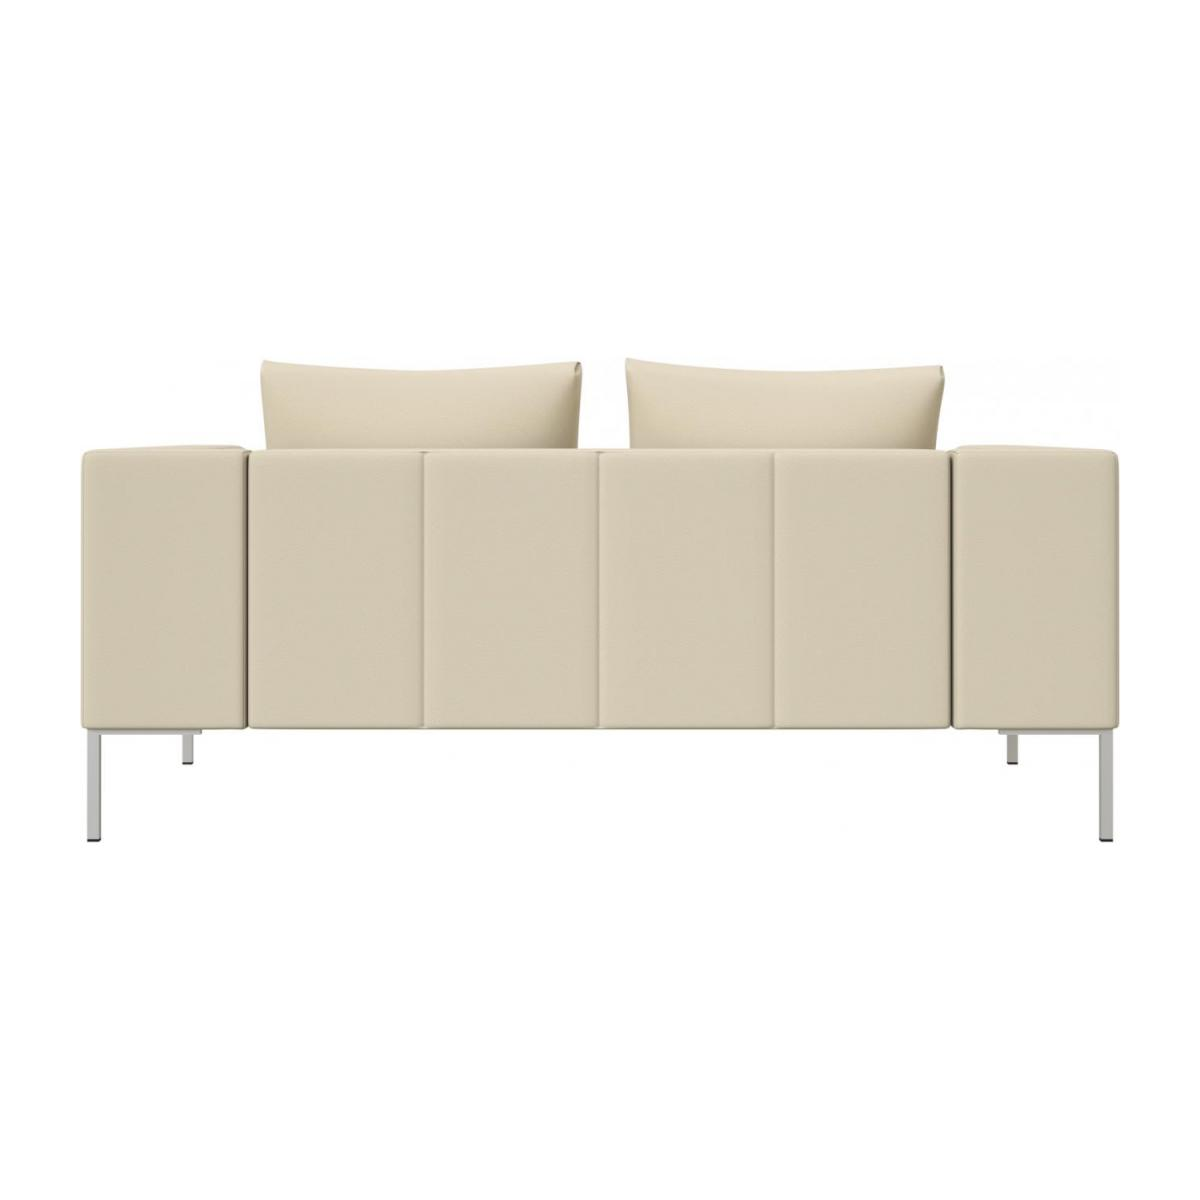 2 seater sofa in Savoy semi-aniline leather, off white n°3